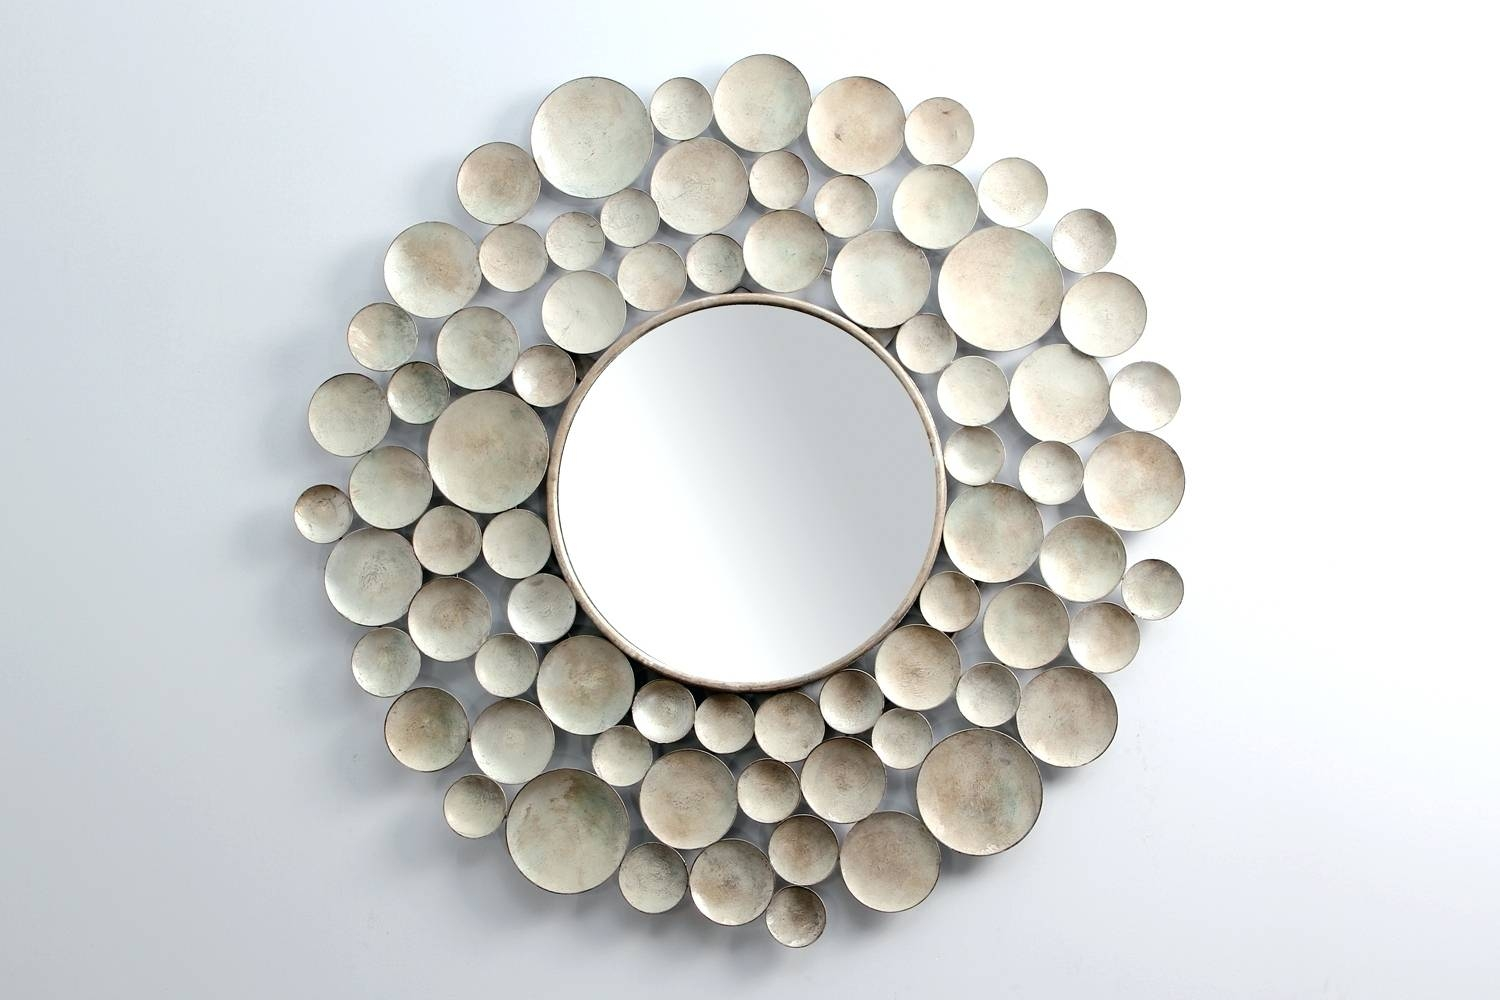 Mirrors : Modern Mirror Round Silver Mirror Wall Art Mirror With Regard To Most Current Mirror Circles Wall Art (View 12 of 20)